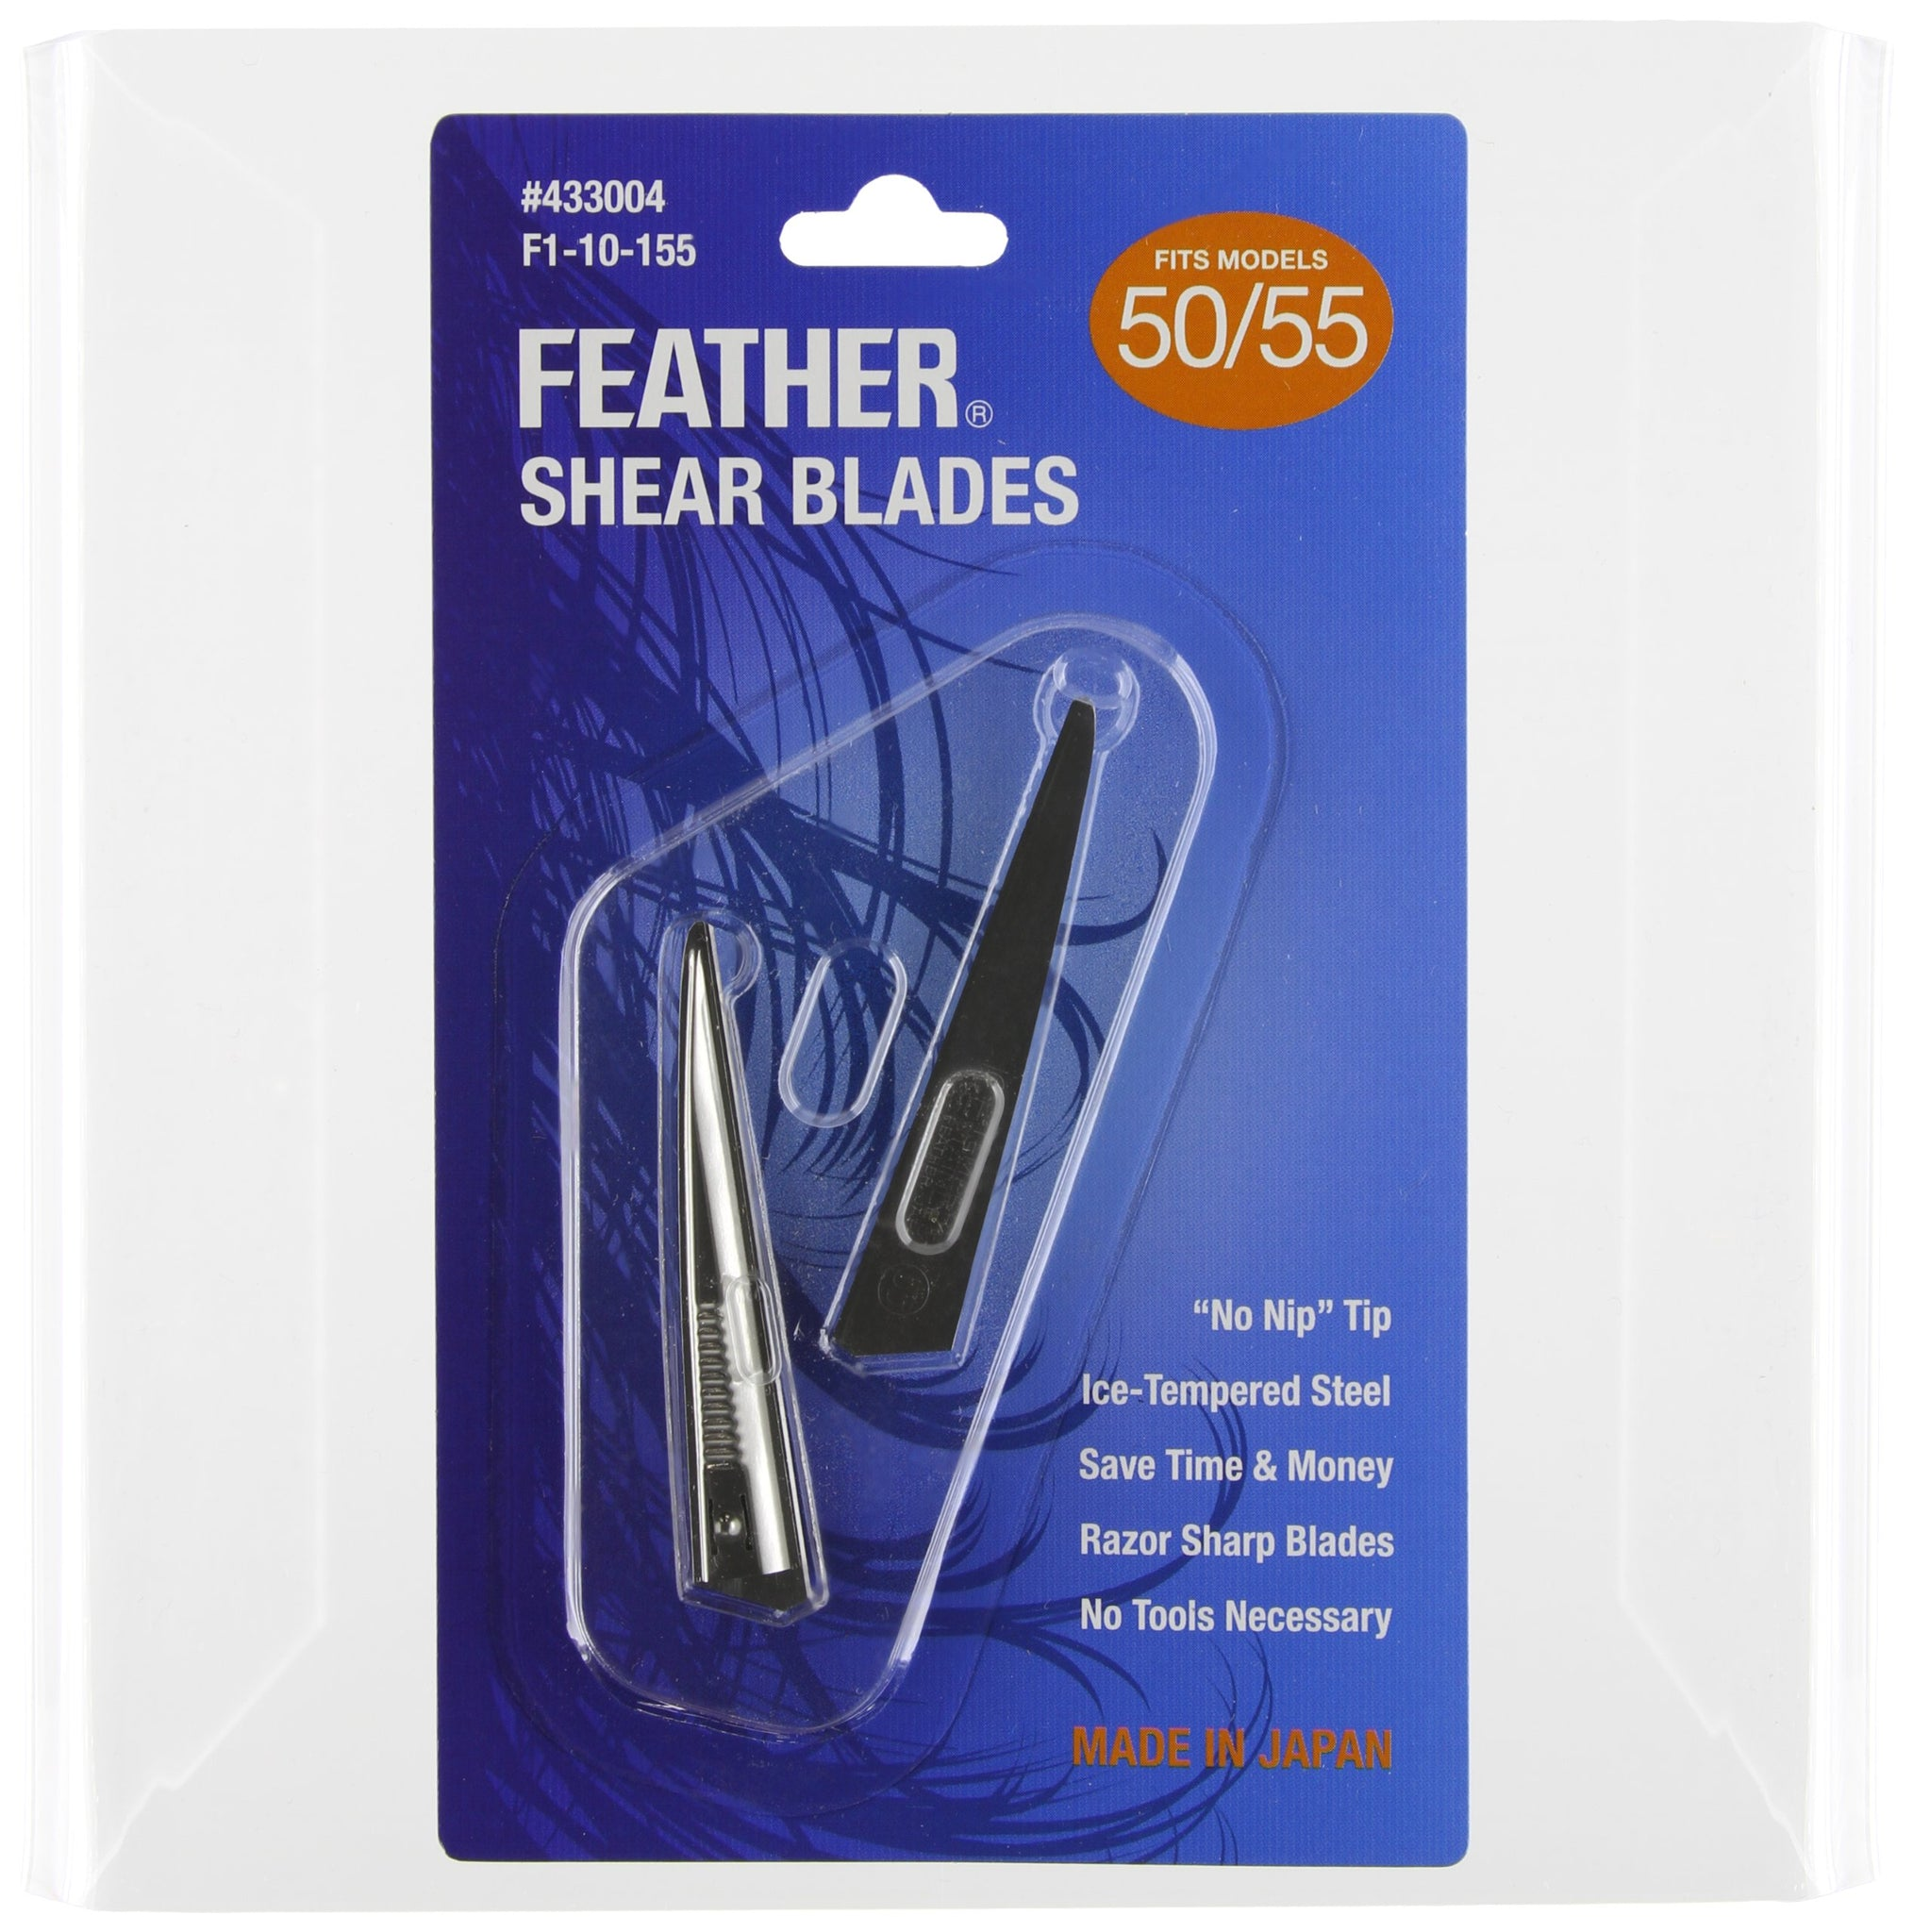 Feather Switch Blade Shears replacement